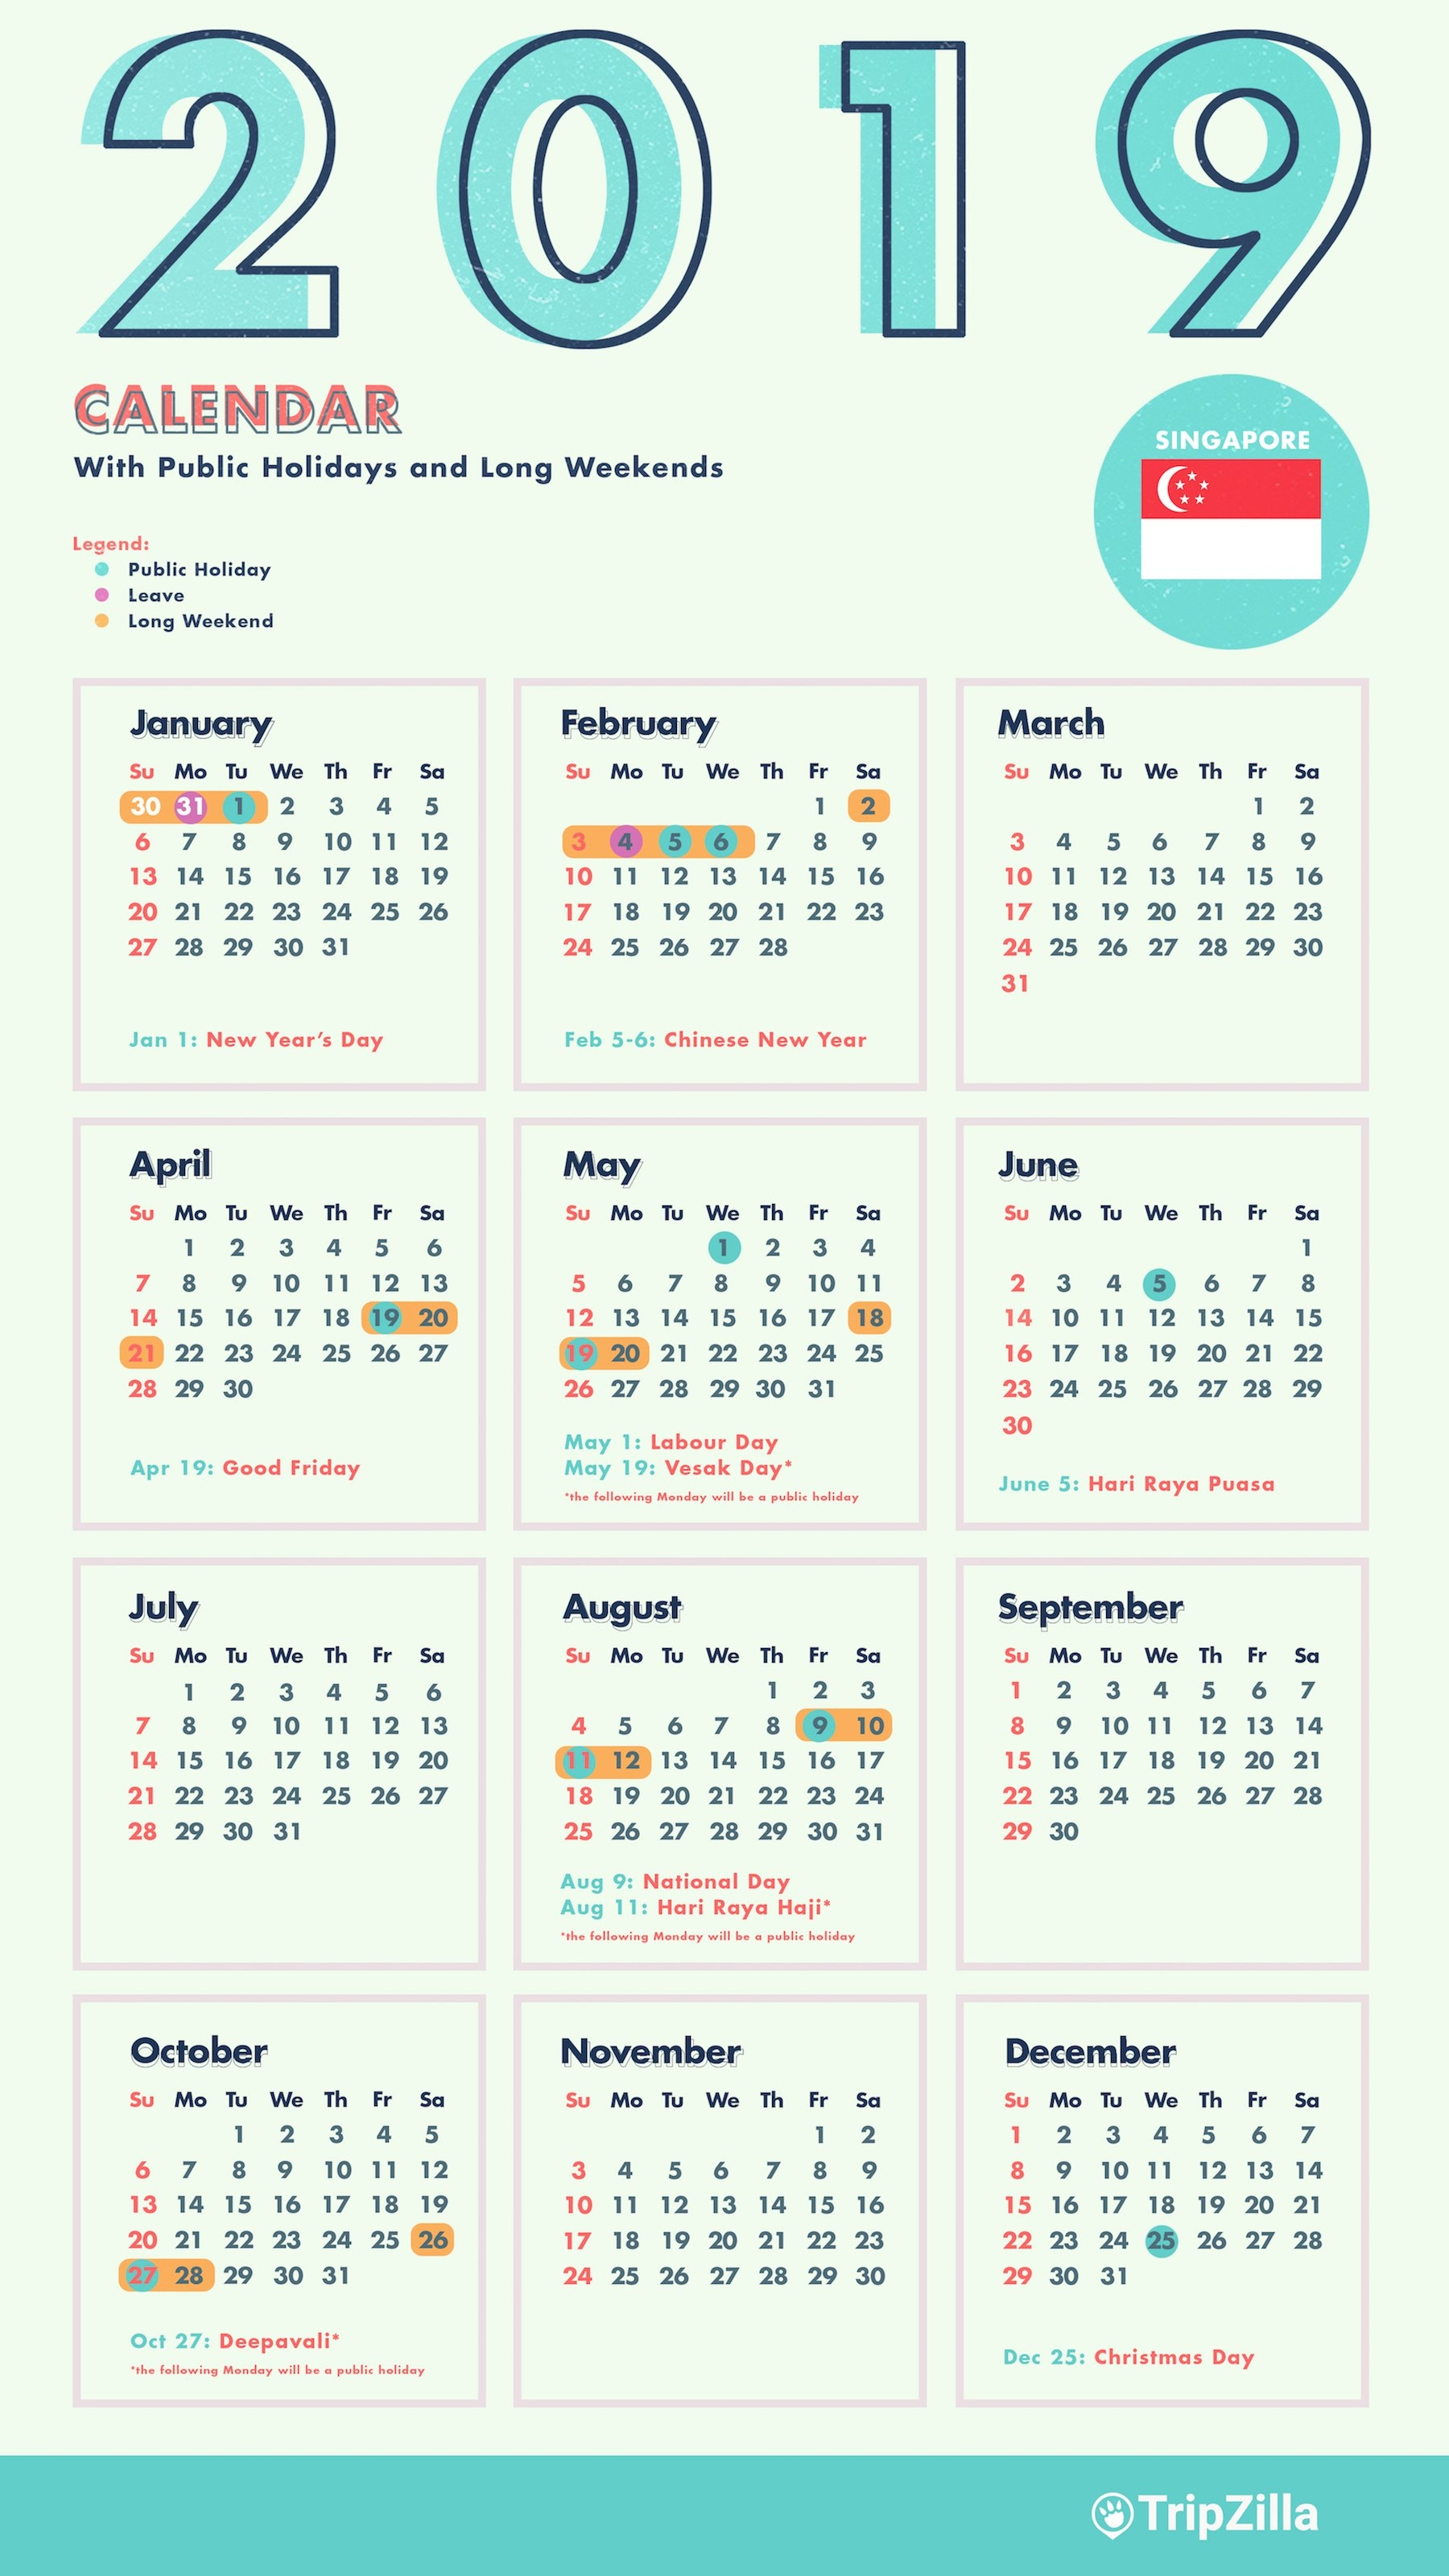 6 Long Weekends In Singapore In 2019 (Bonus Calendar & Cheatsheet) Calendar 2019 With Holidays